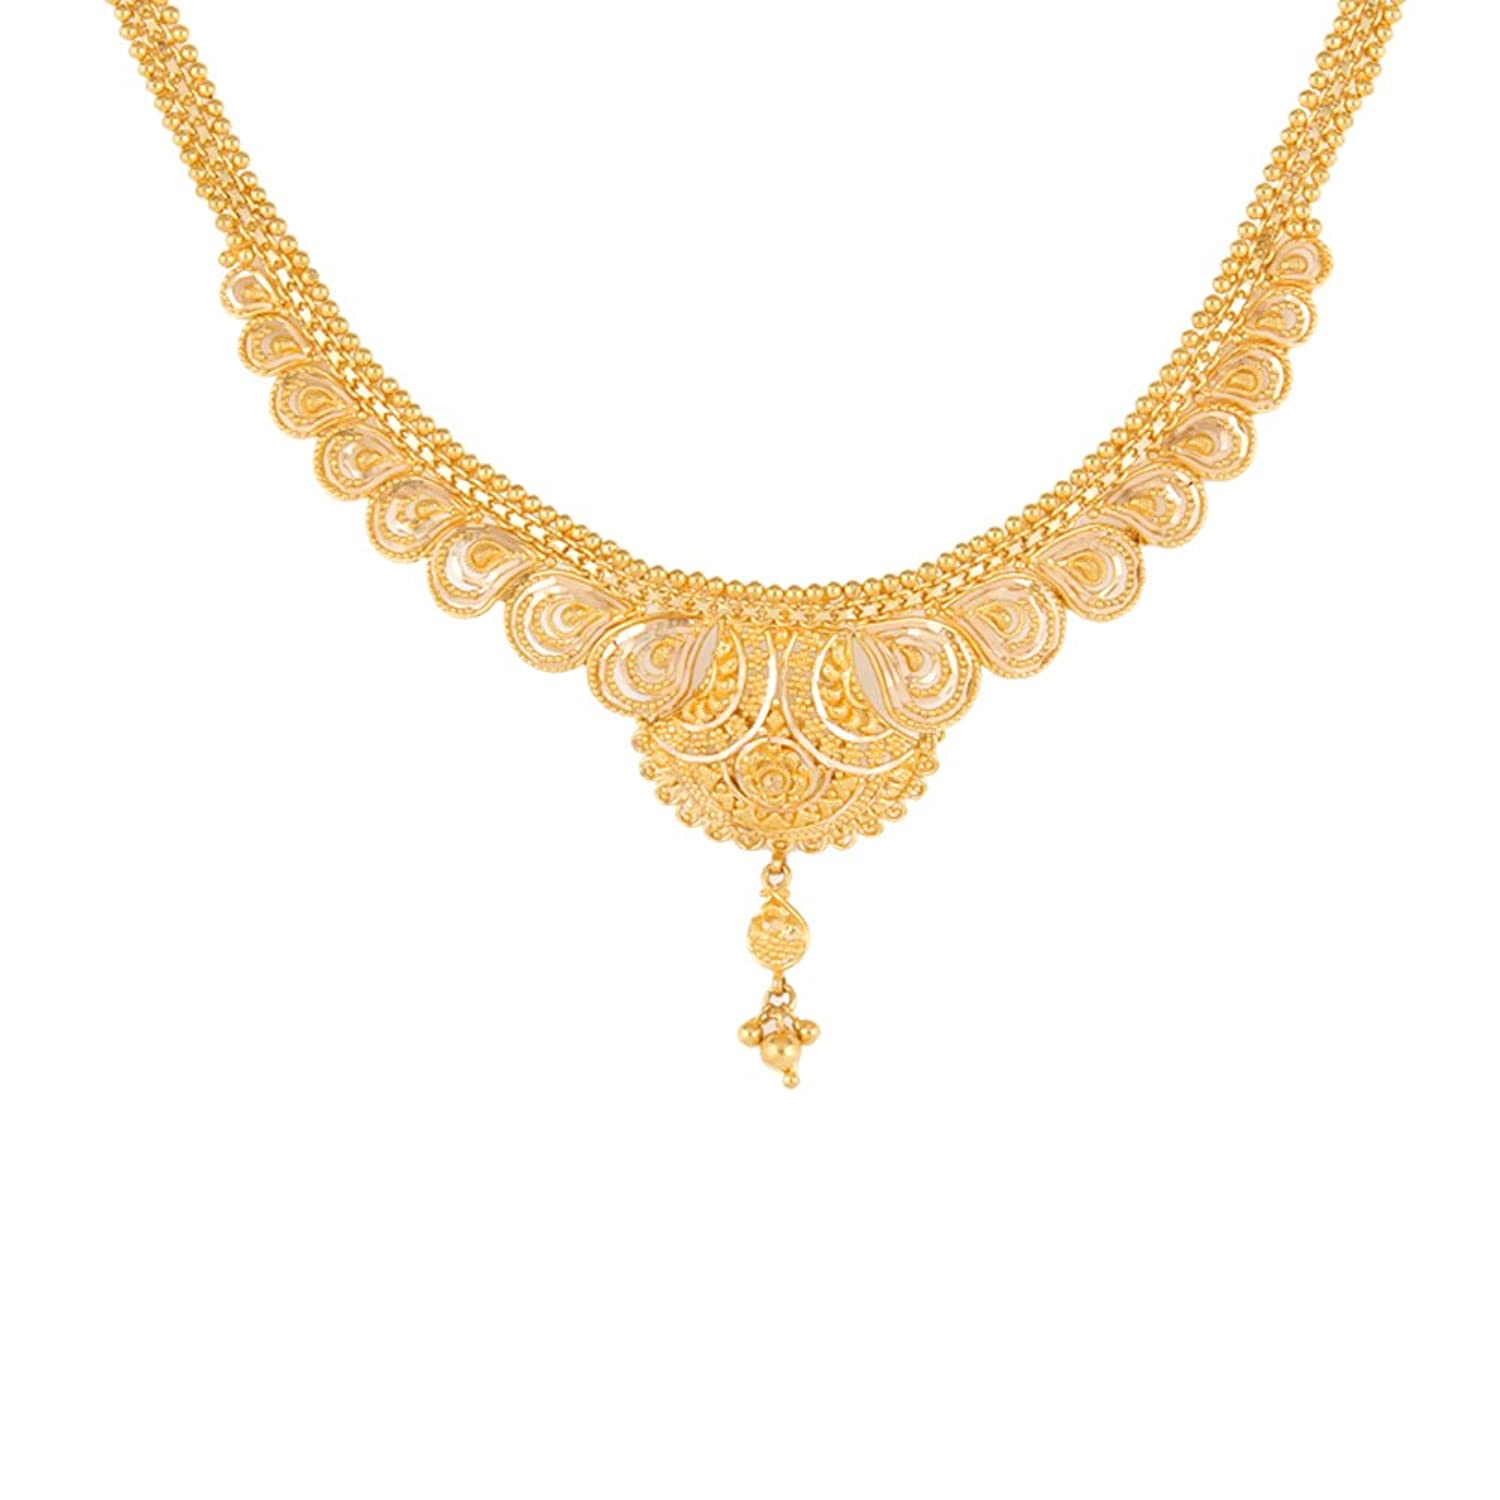 Buy WHP Jewellers 22k Yellow Gold Chain Necklace Online at Low ...